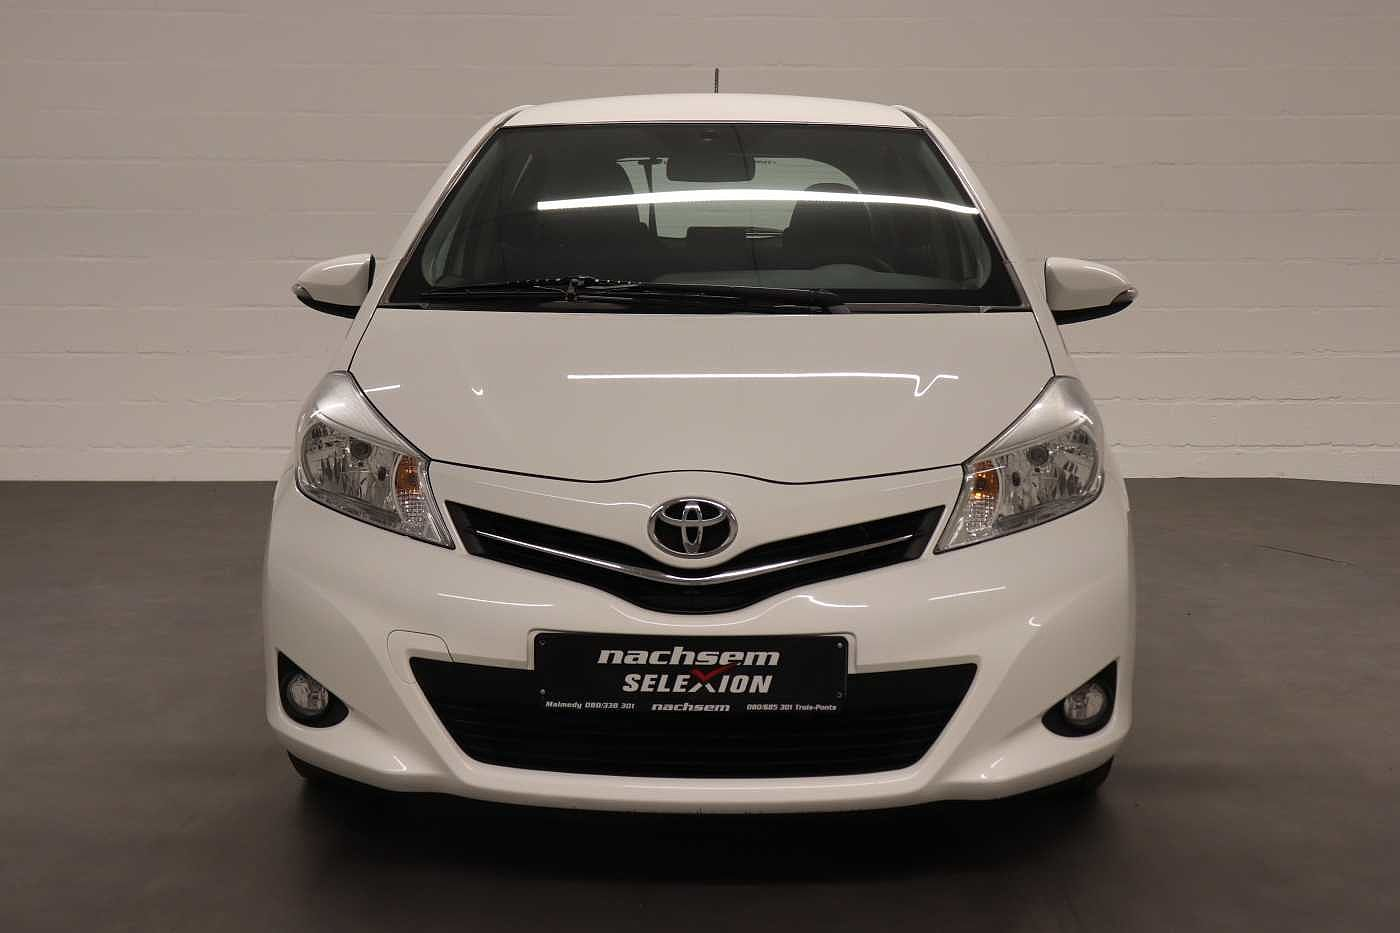 Toyota Yaris 1.4 D-4D 6MT - photo 5